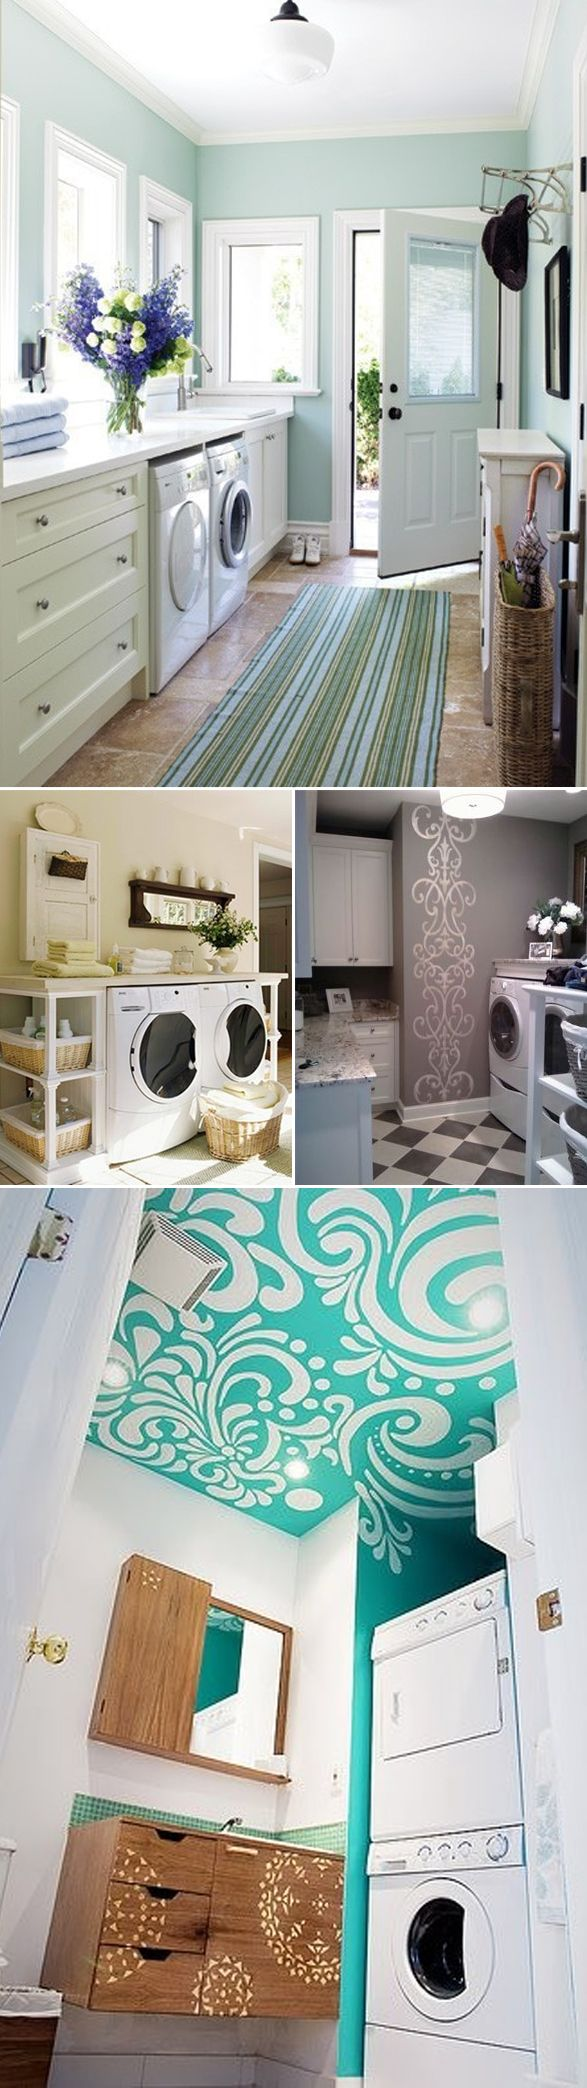 Laundry rooms home sweet home pinterest lavander a - Sweet home muebles ...